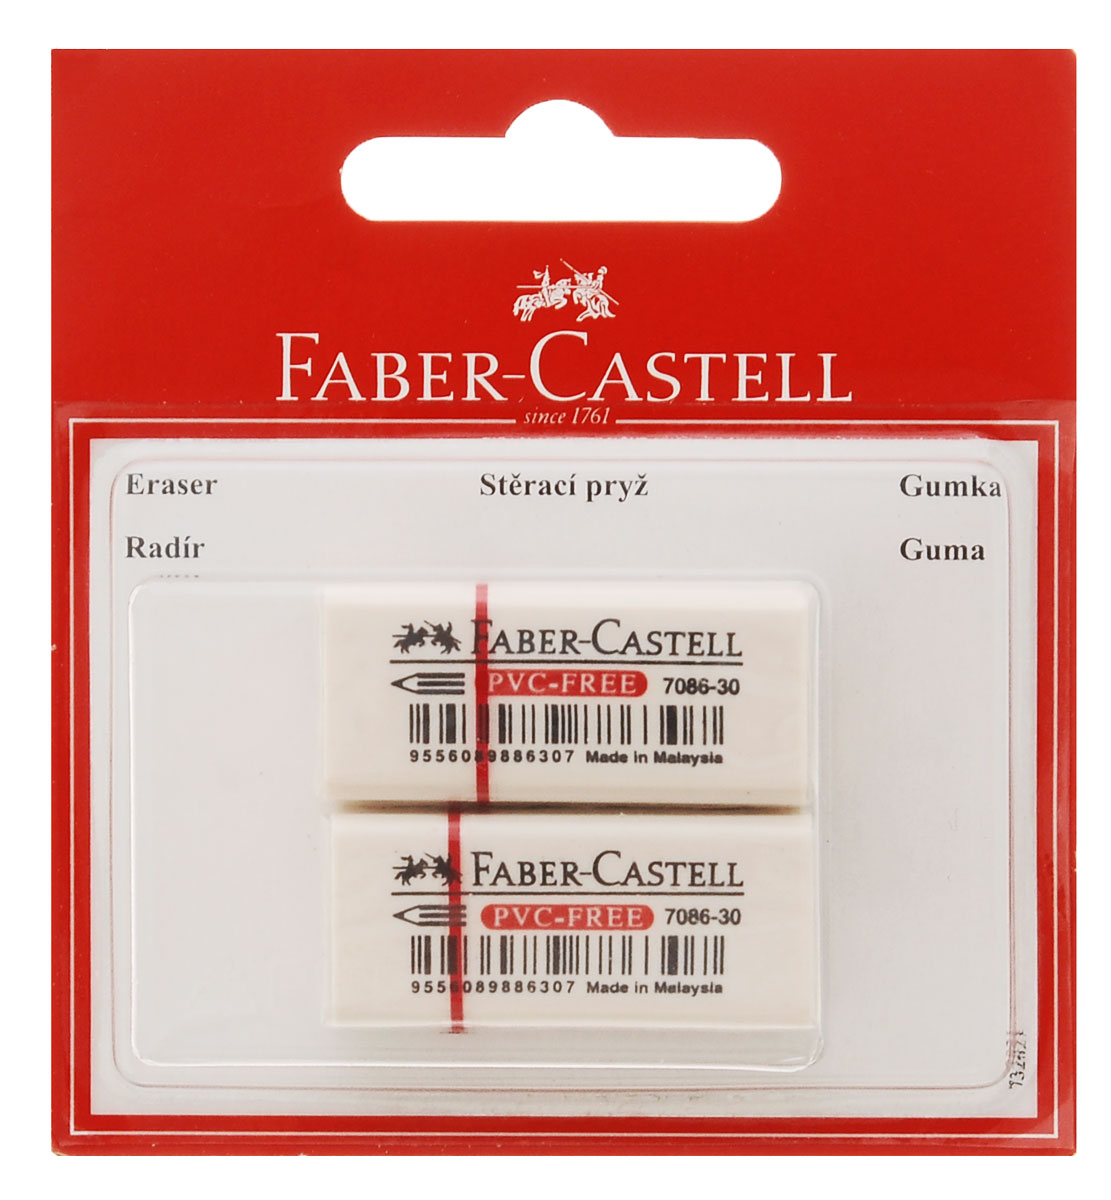 Faber-Castell Ластик виниловый 2 шт